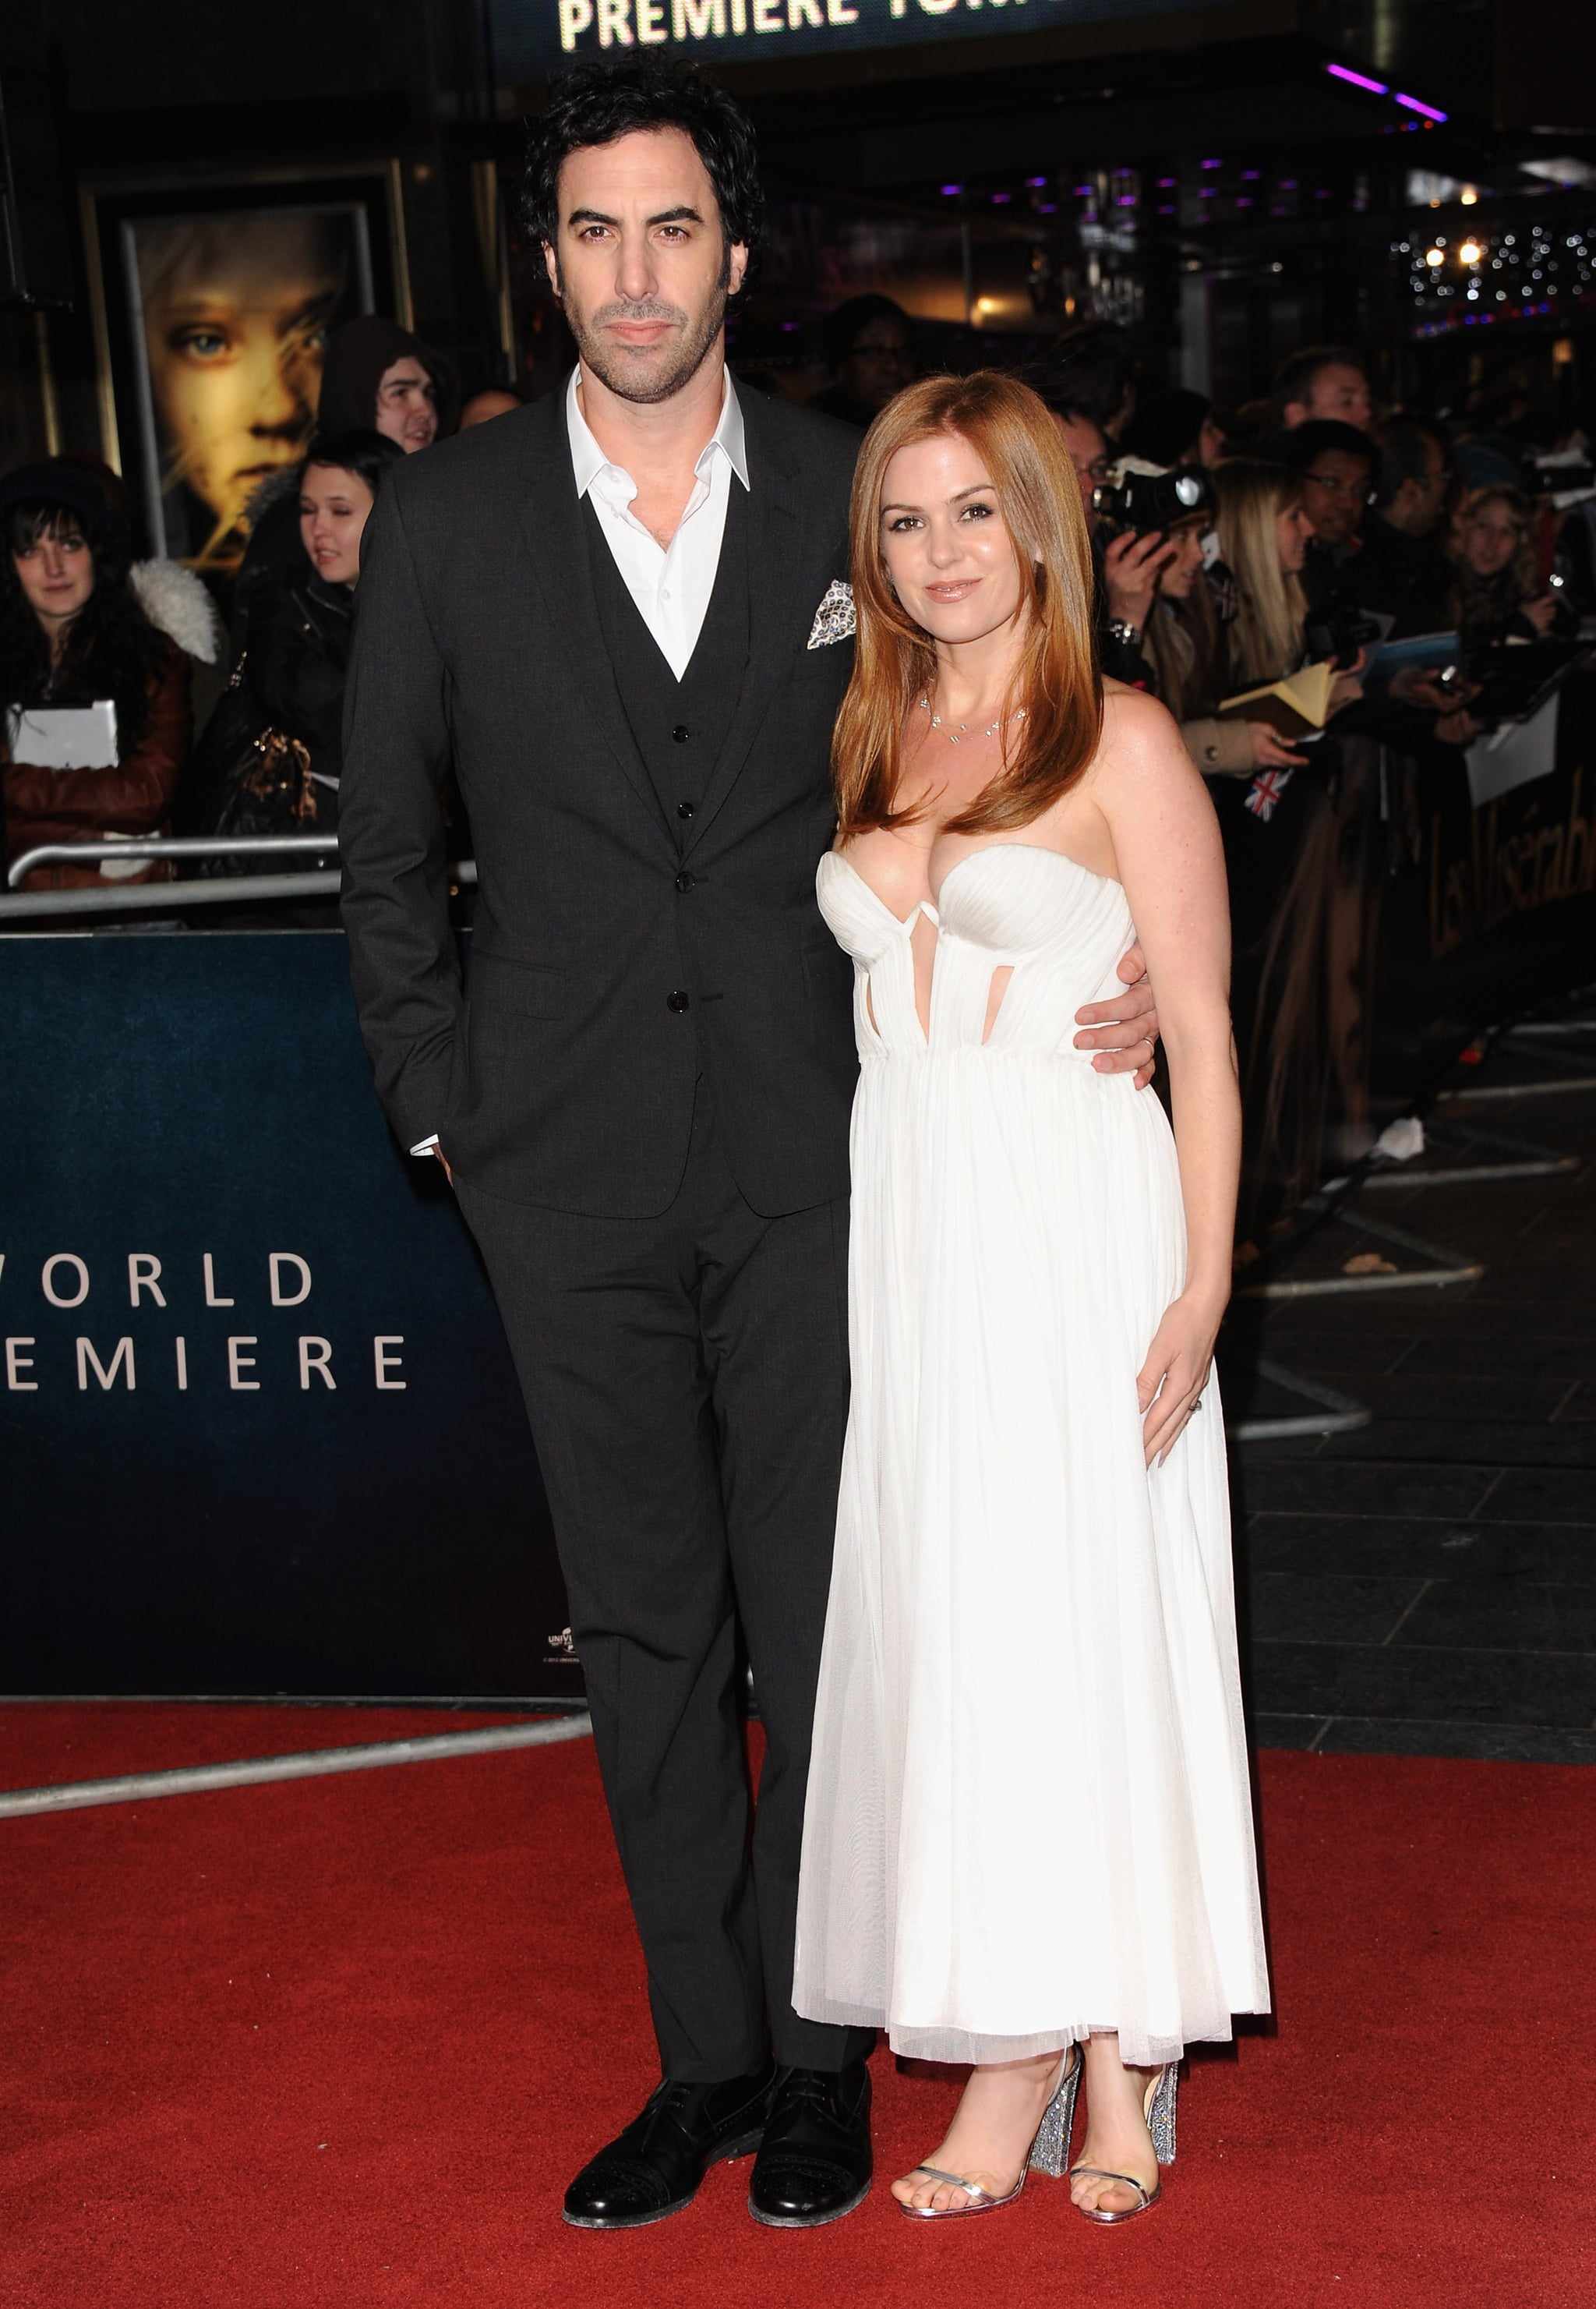 Isla Fisher and husband, Sasha Baron Cohen stepped out in London for the Les Miserables.